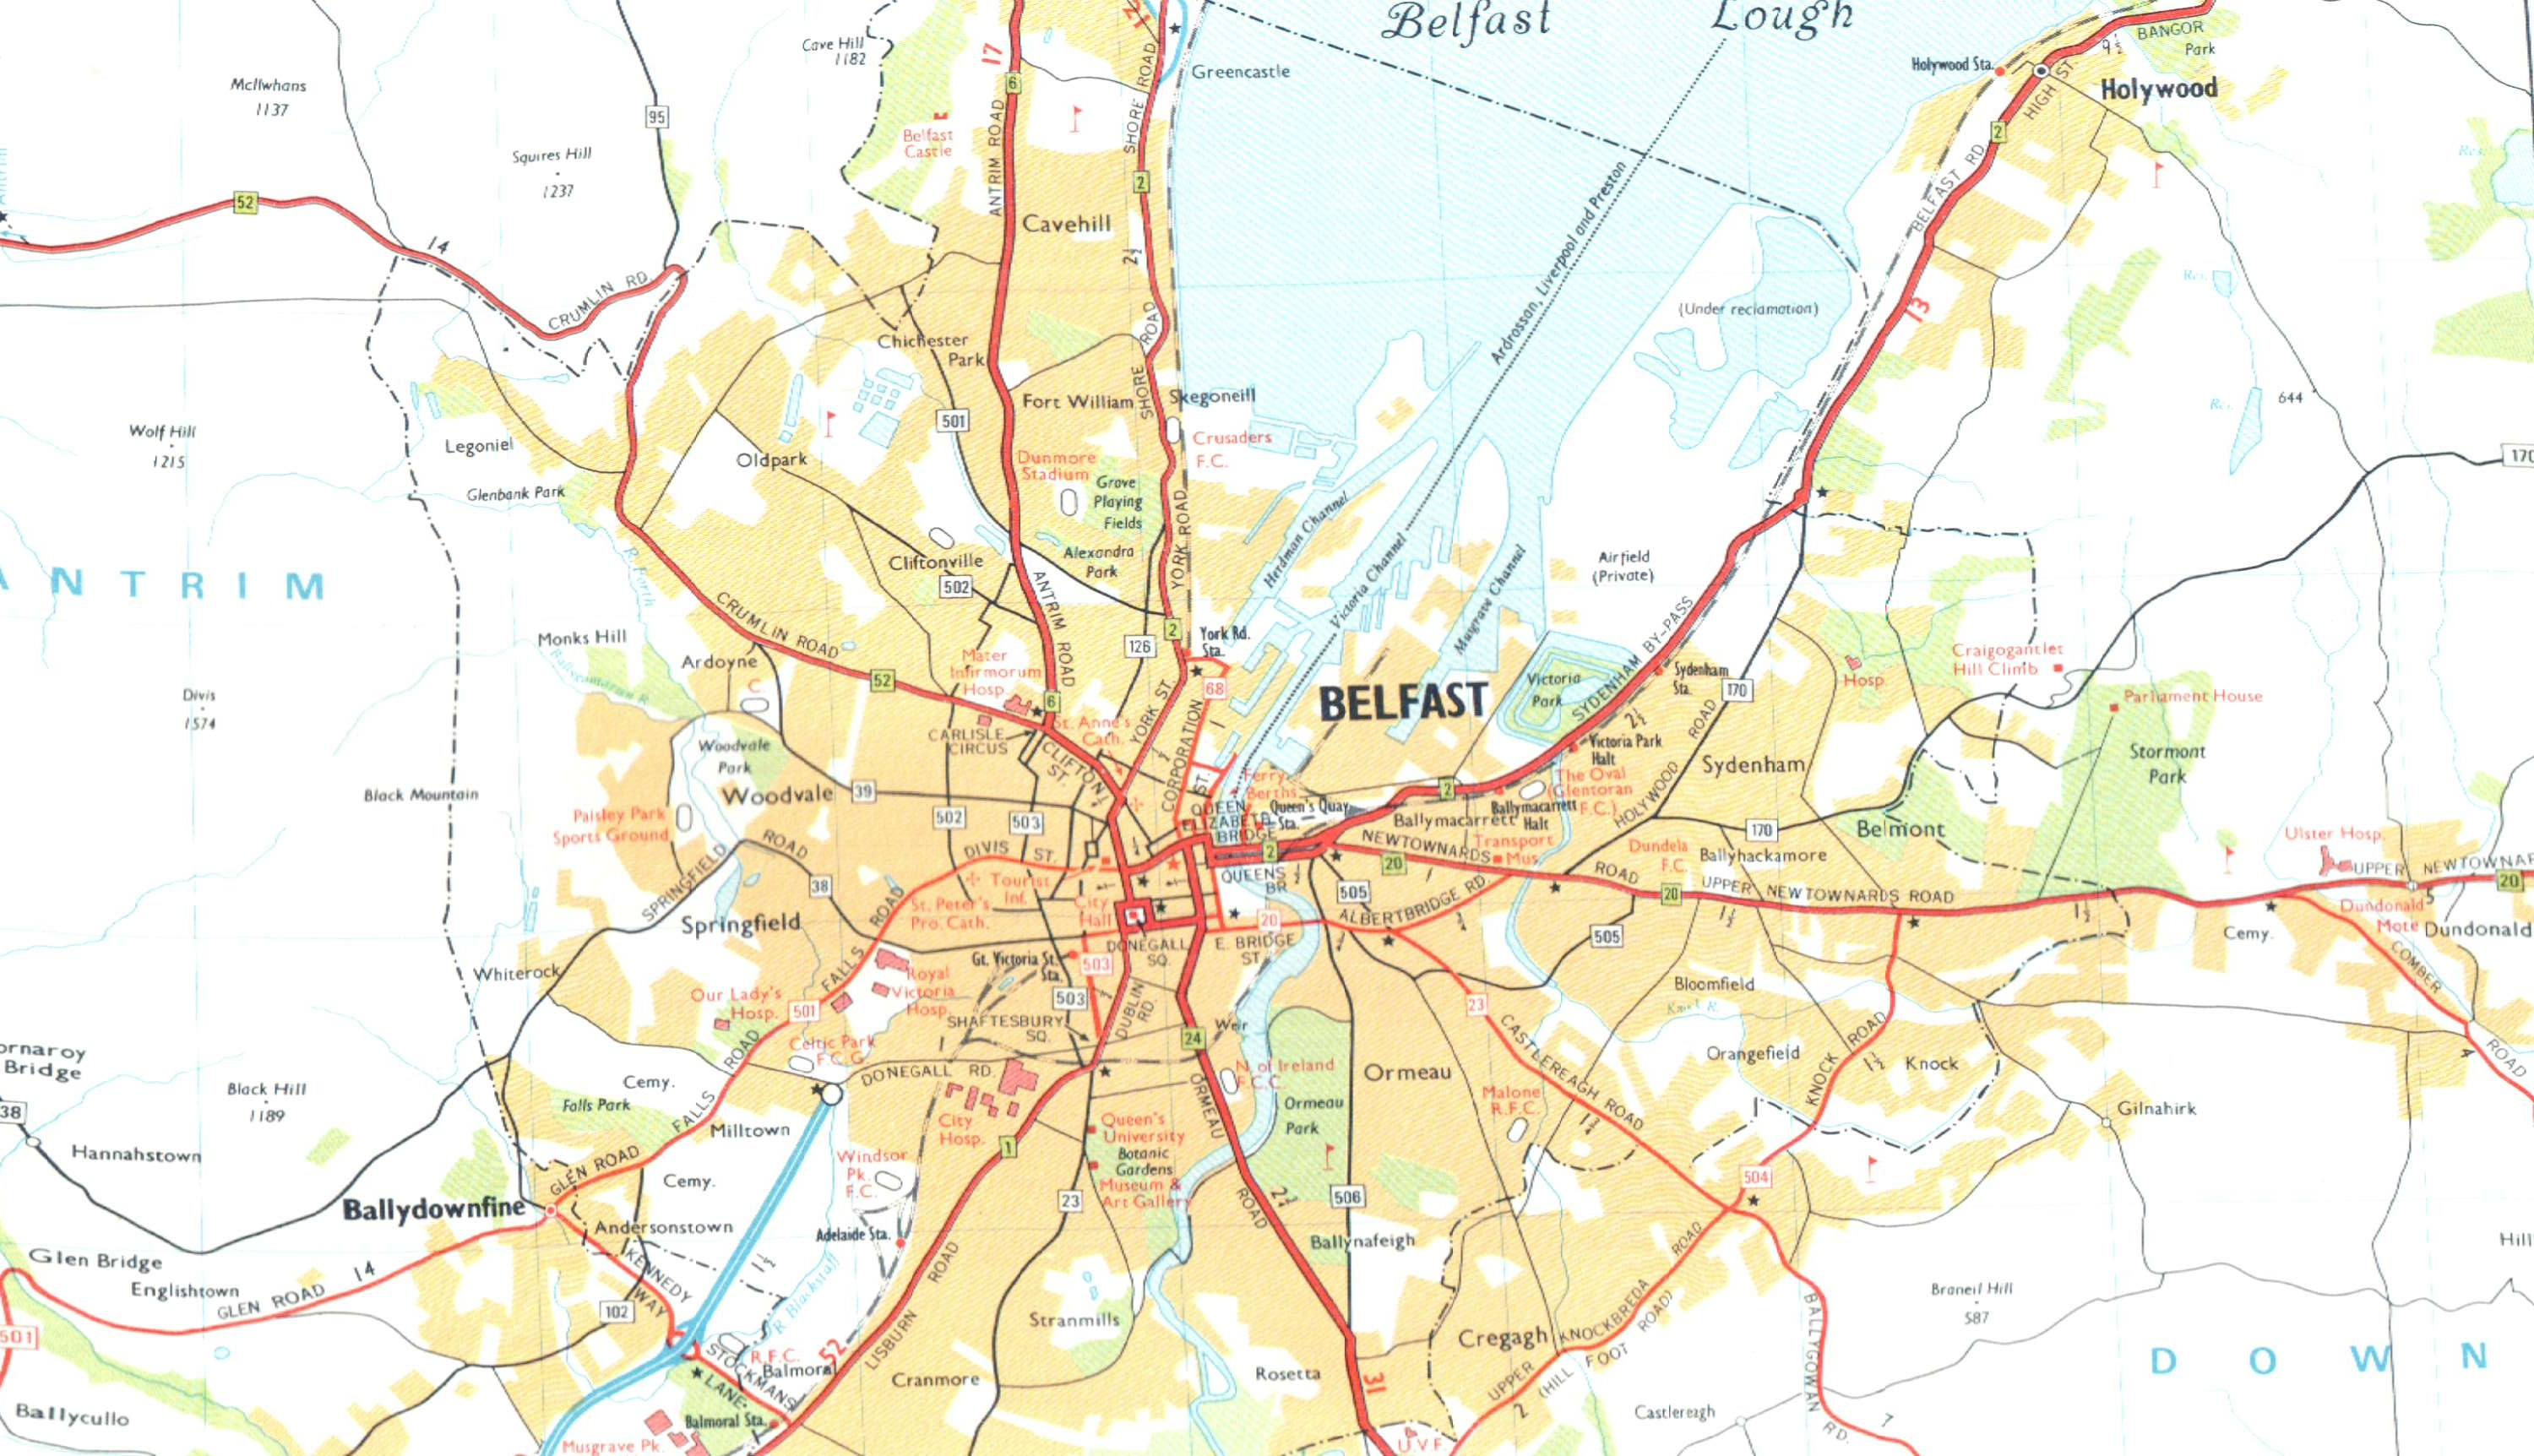 Download wallpaper high full HD » map of belfast | Full Wallpapers HOME